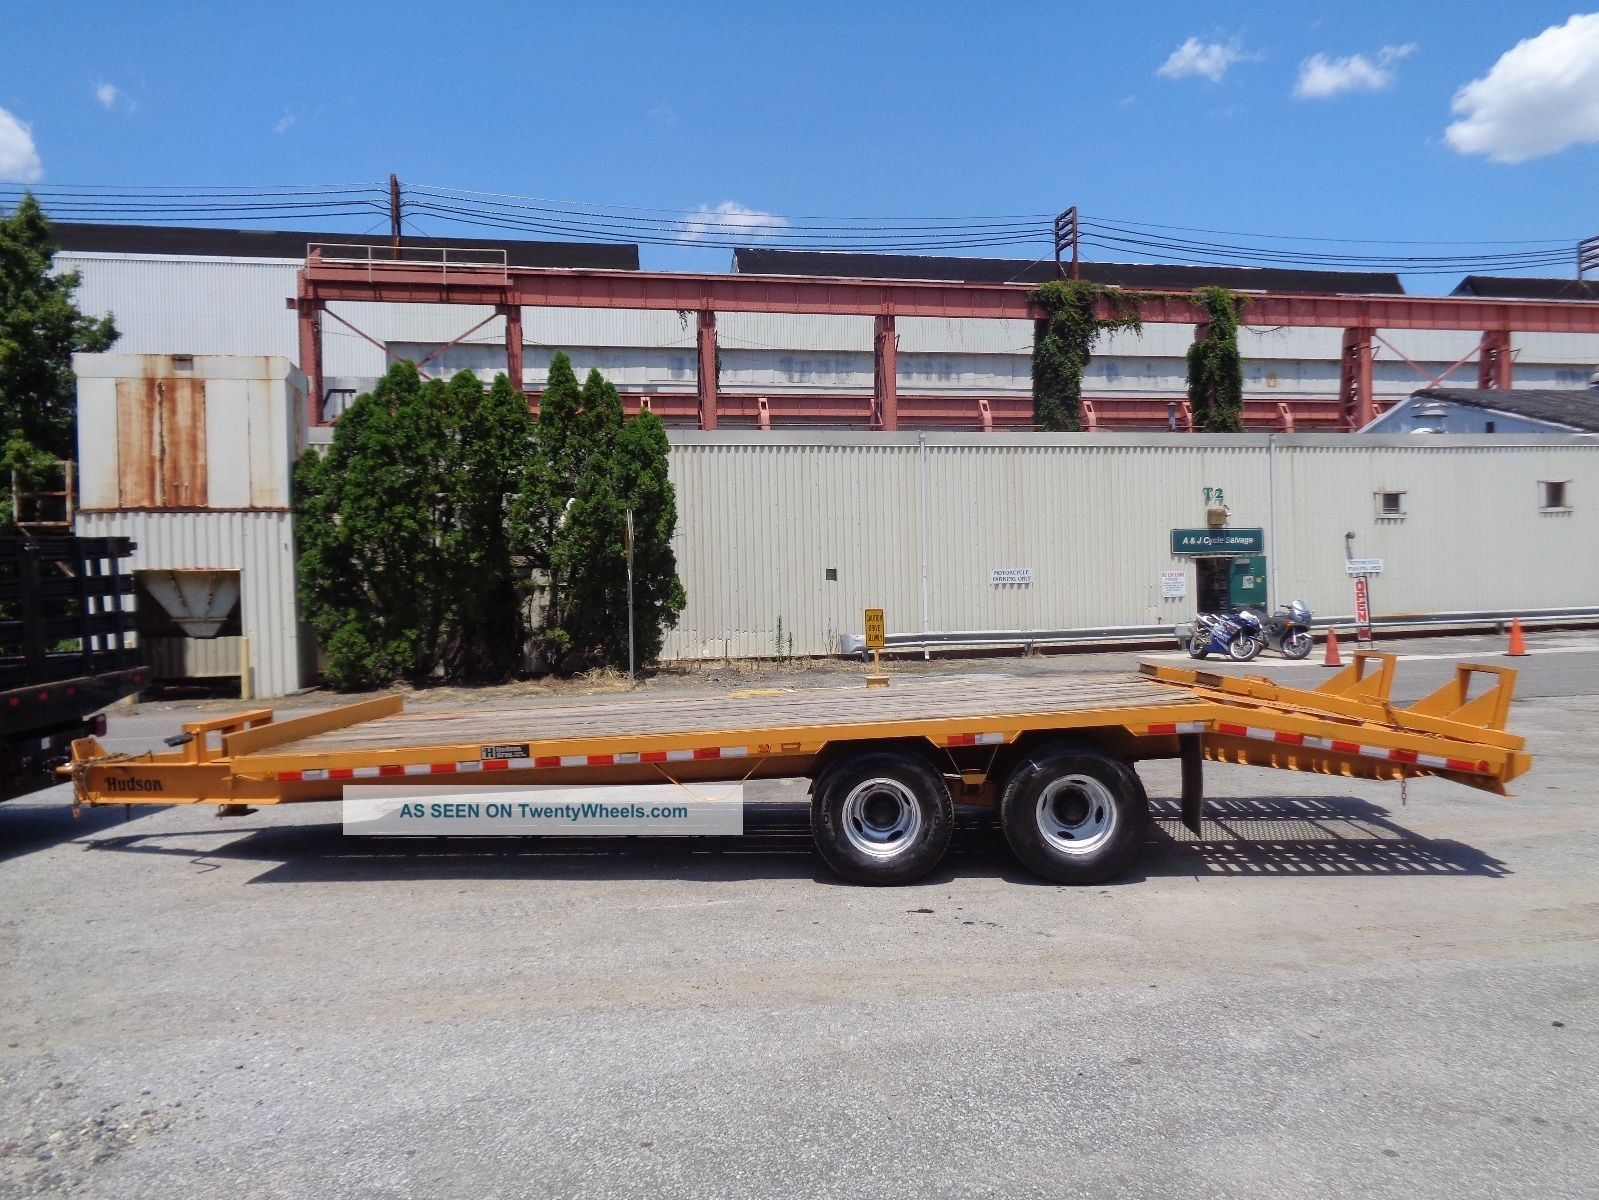 2006 Hudson Htd180 Tag Along 10 Ton Equipment Flat Bed Trailer - 25 Ft Long Trailers photo